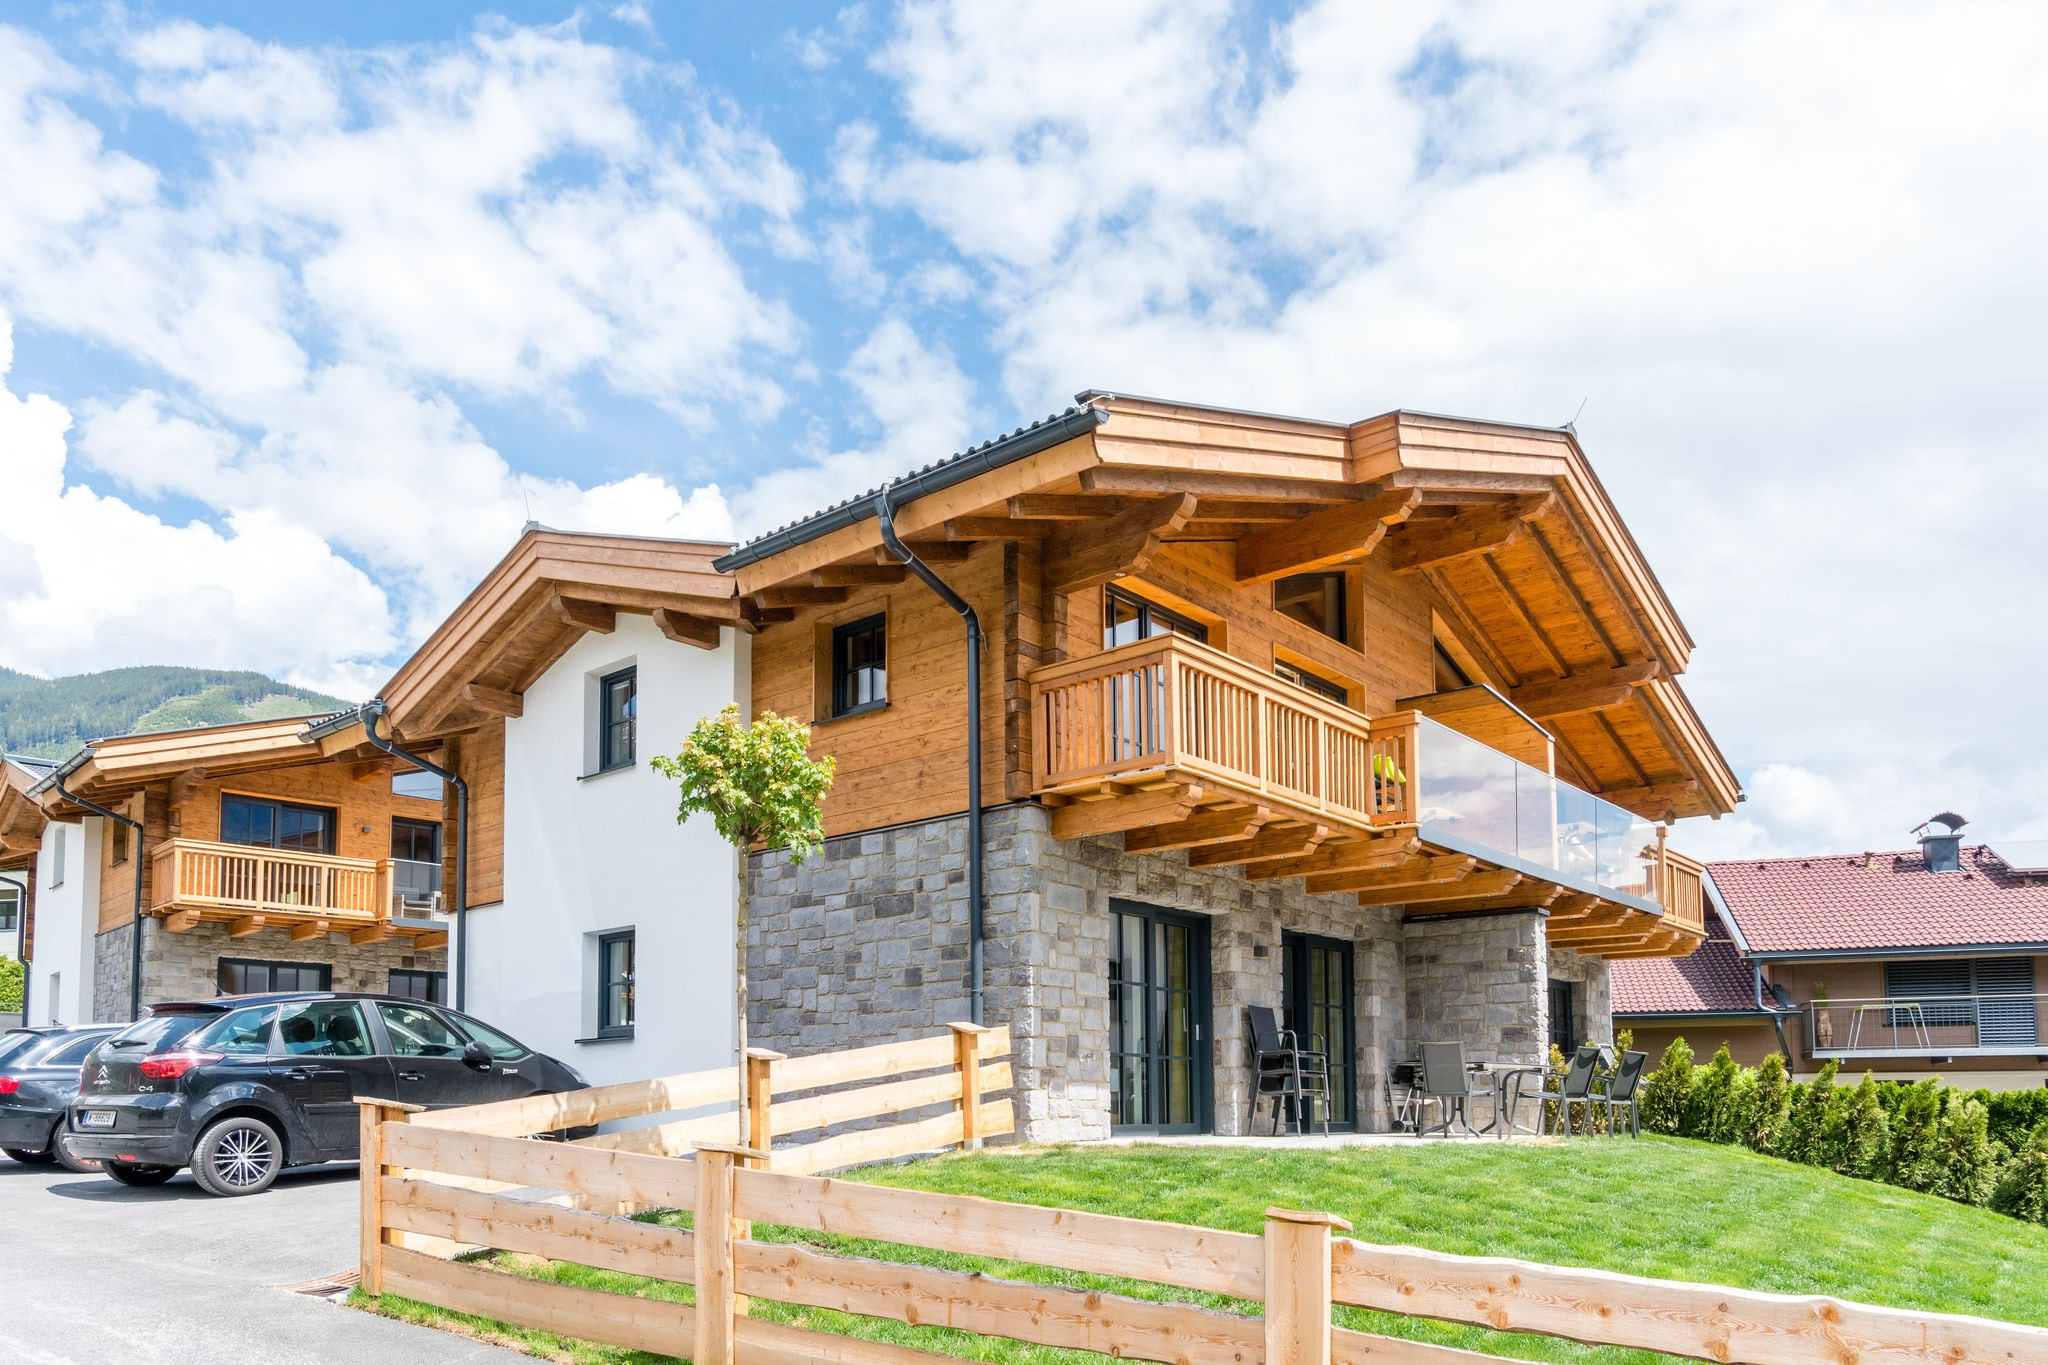 Green Garden Lodge A2 Walchen/Kaprun